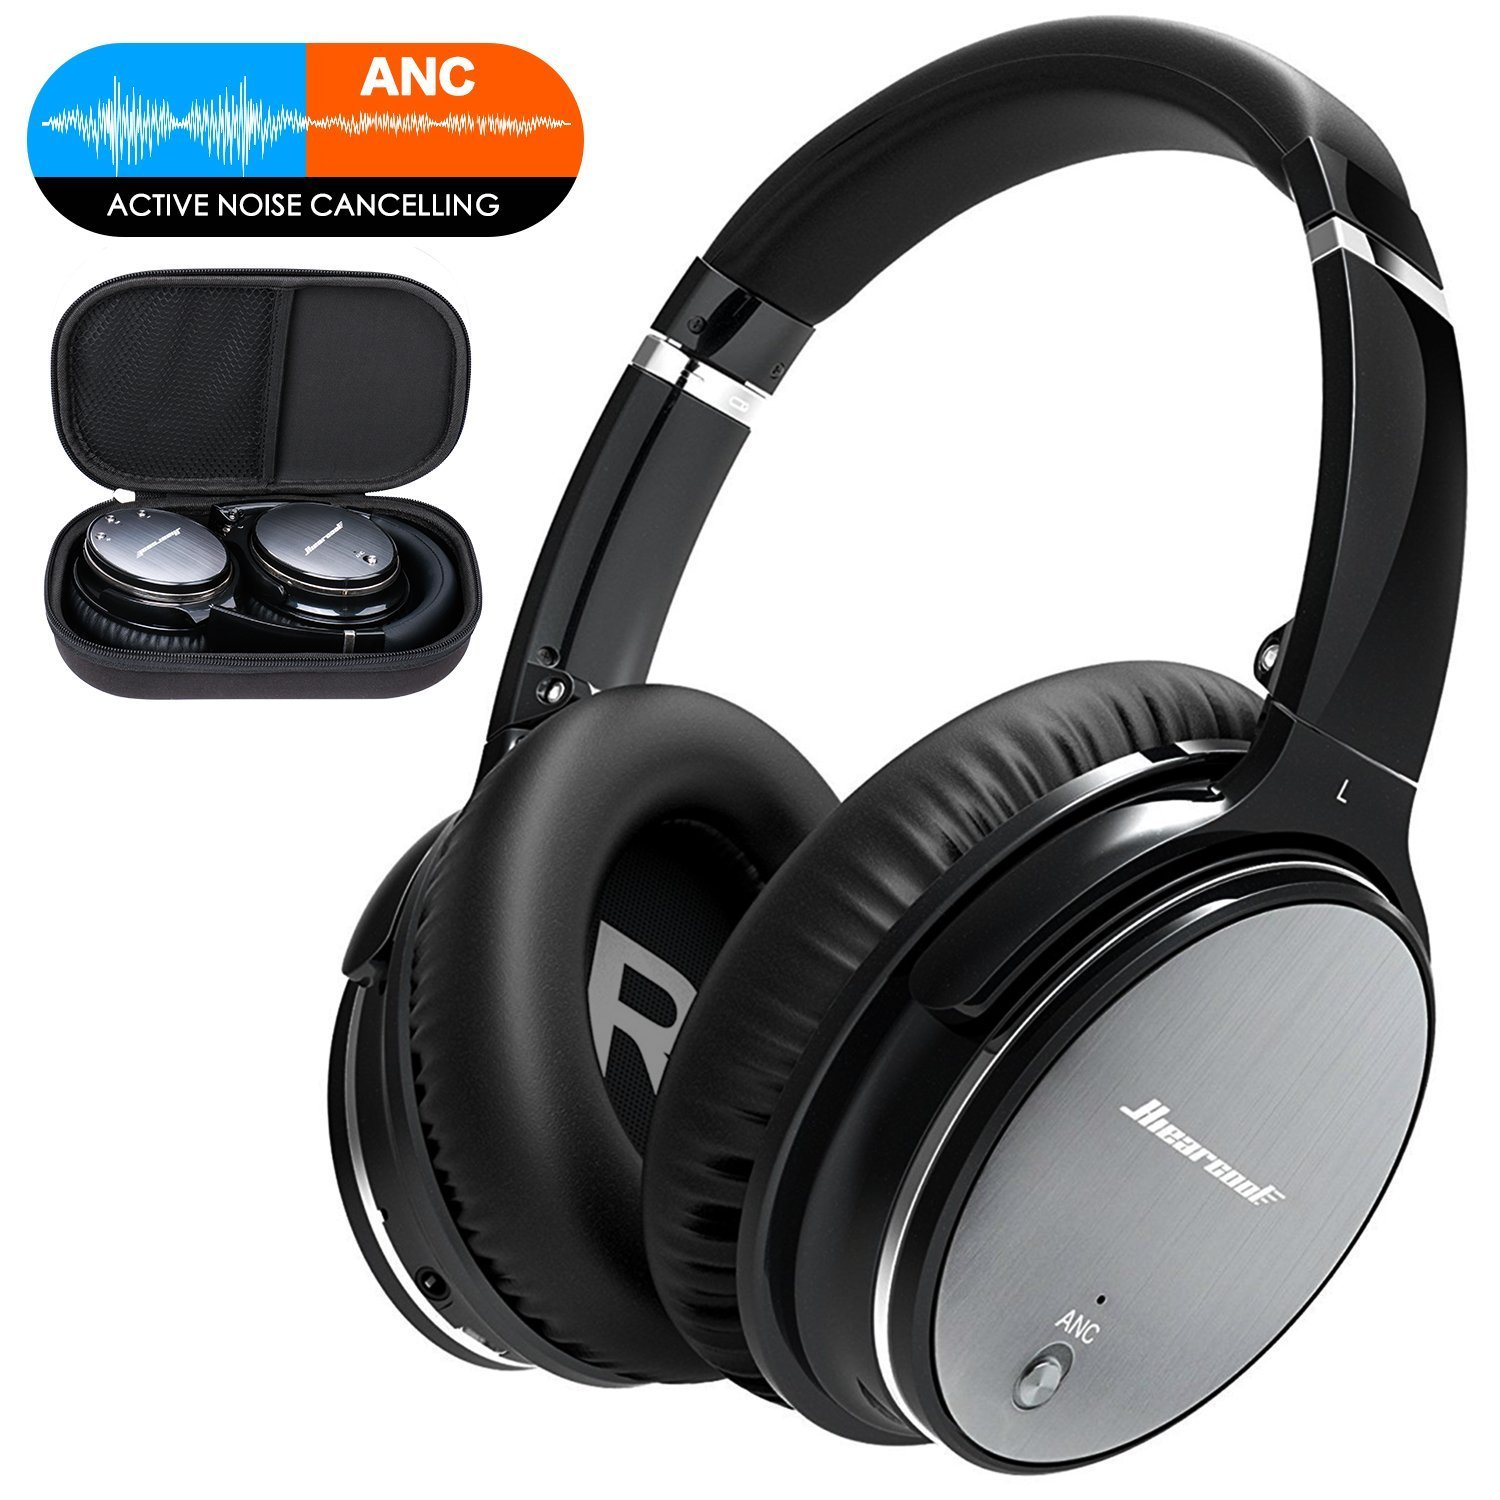 Active Noise Cancelling Bluetooth Headphones with Microphone Deep Bass Wireless Headphones Over Ear, Comfortable Protein Earpads, Wired Mode,30H Playtime for Travel Work TV Computer iPhone -Iron Grey